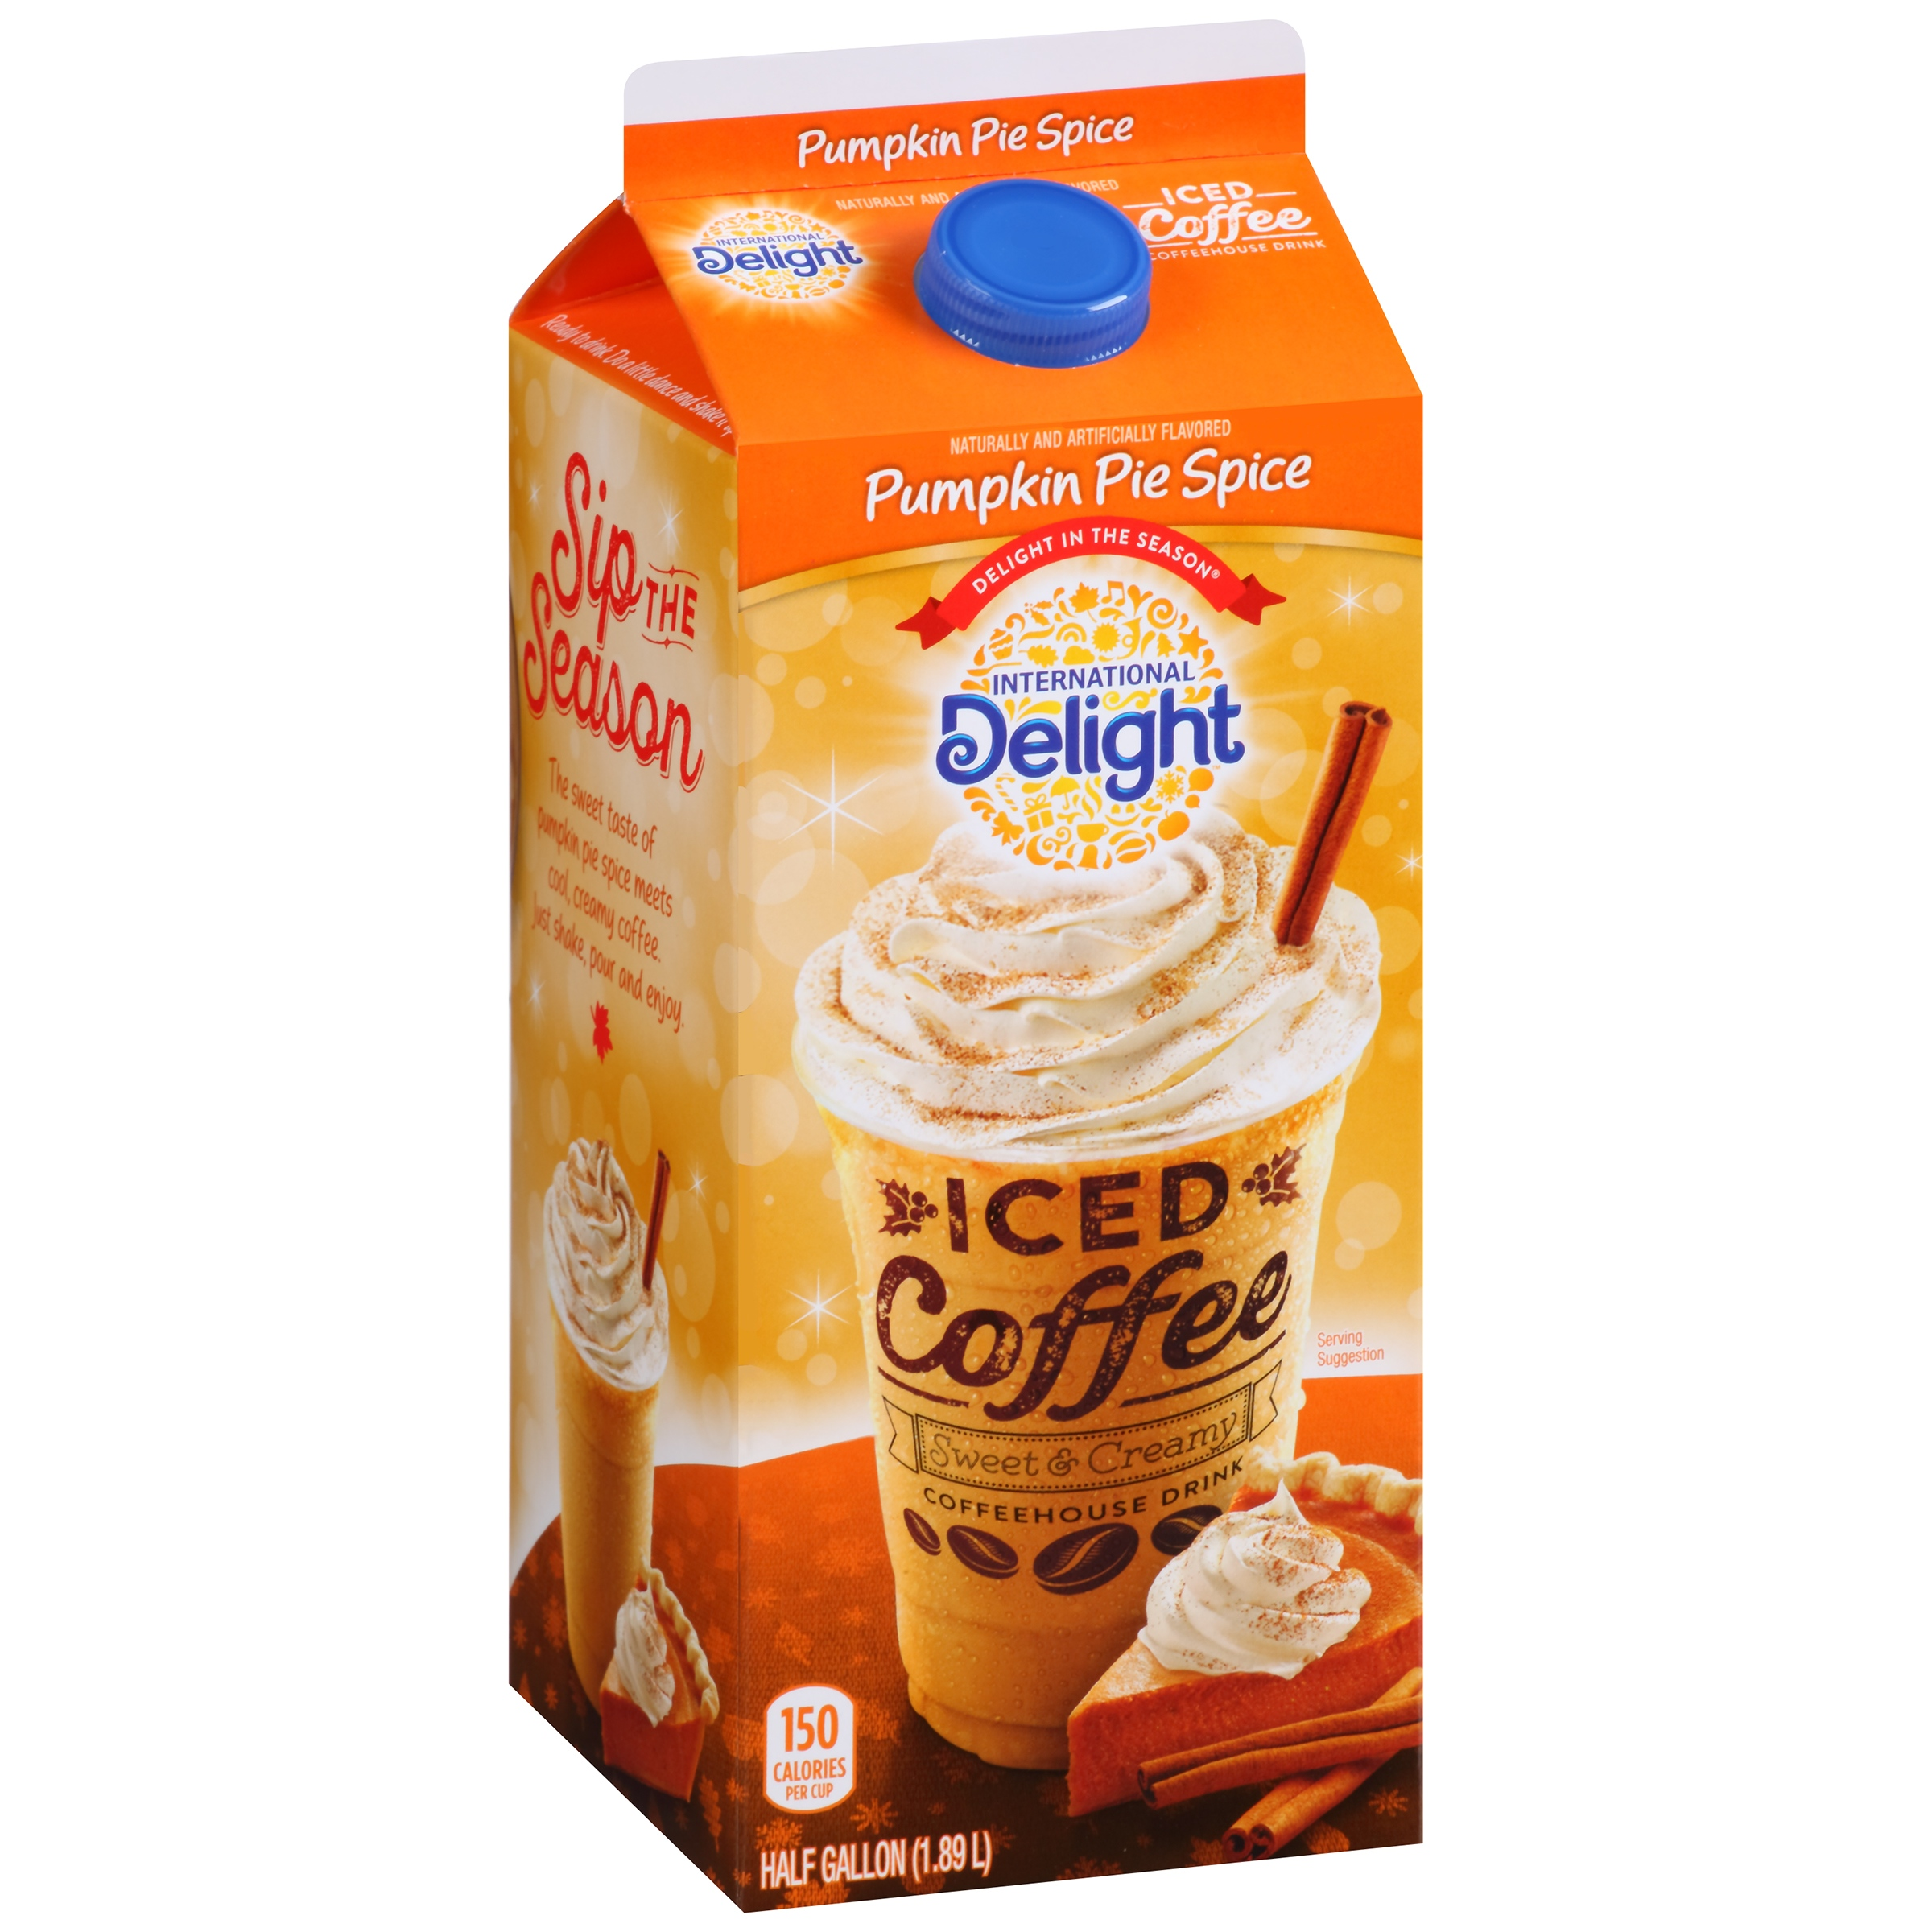 International Delight Original Iced Coffee Nutrition Facts